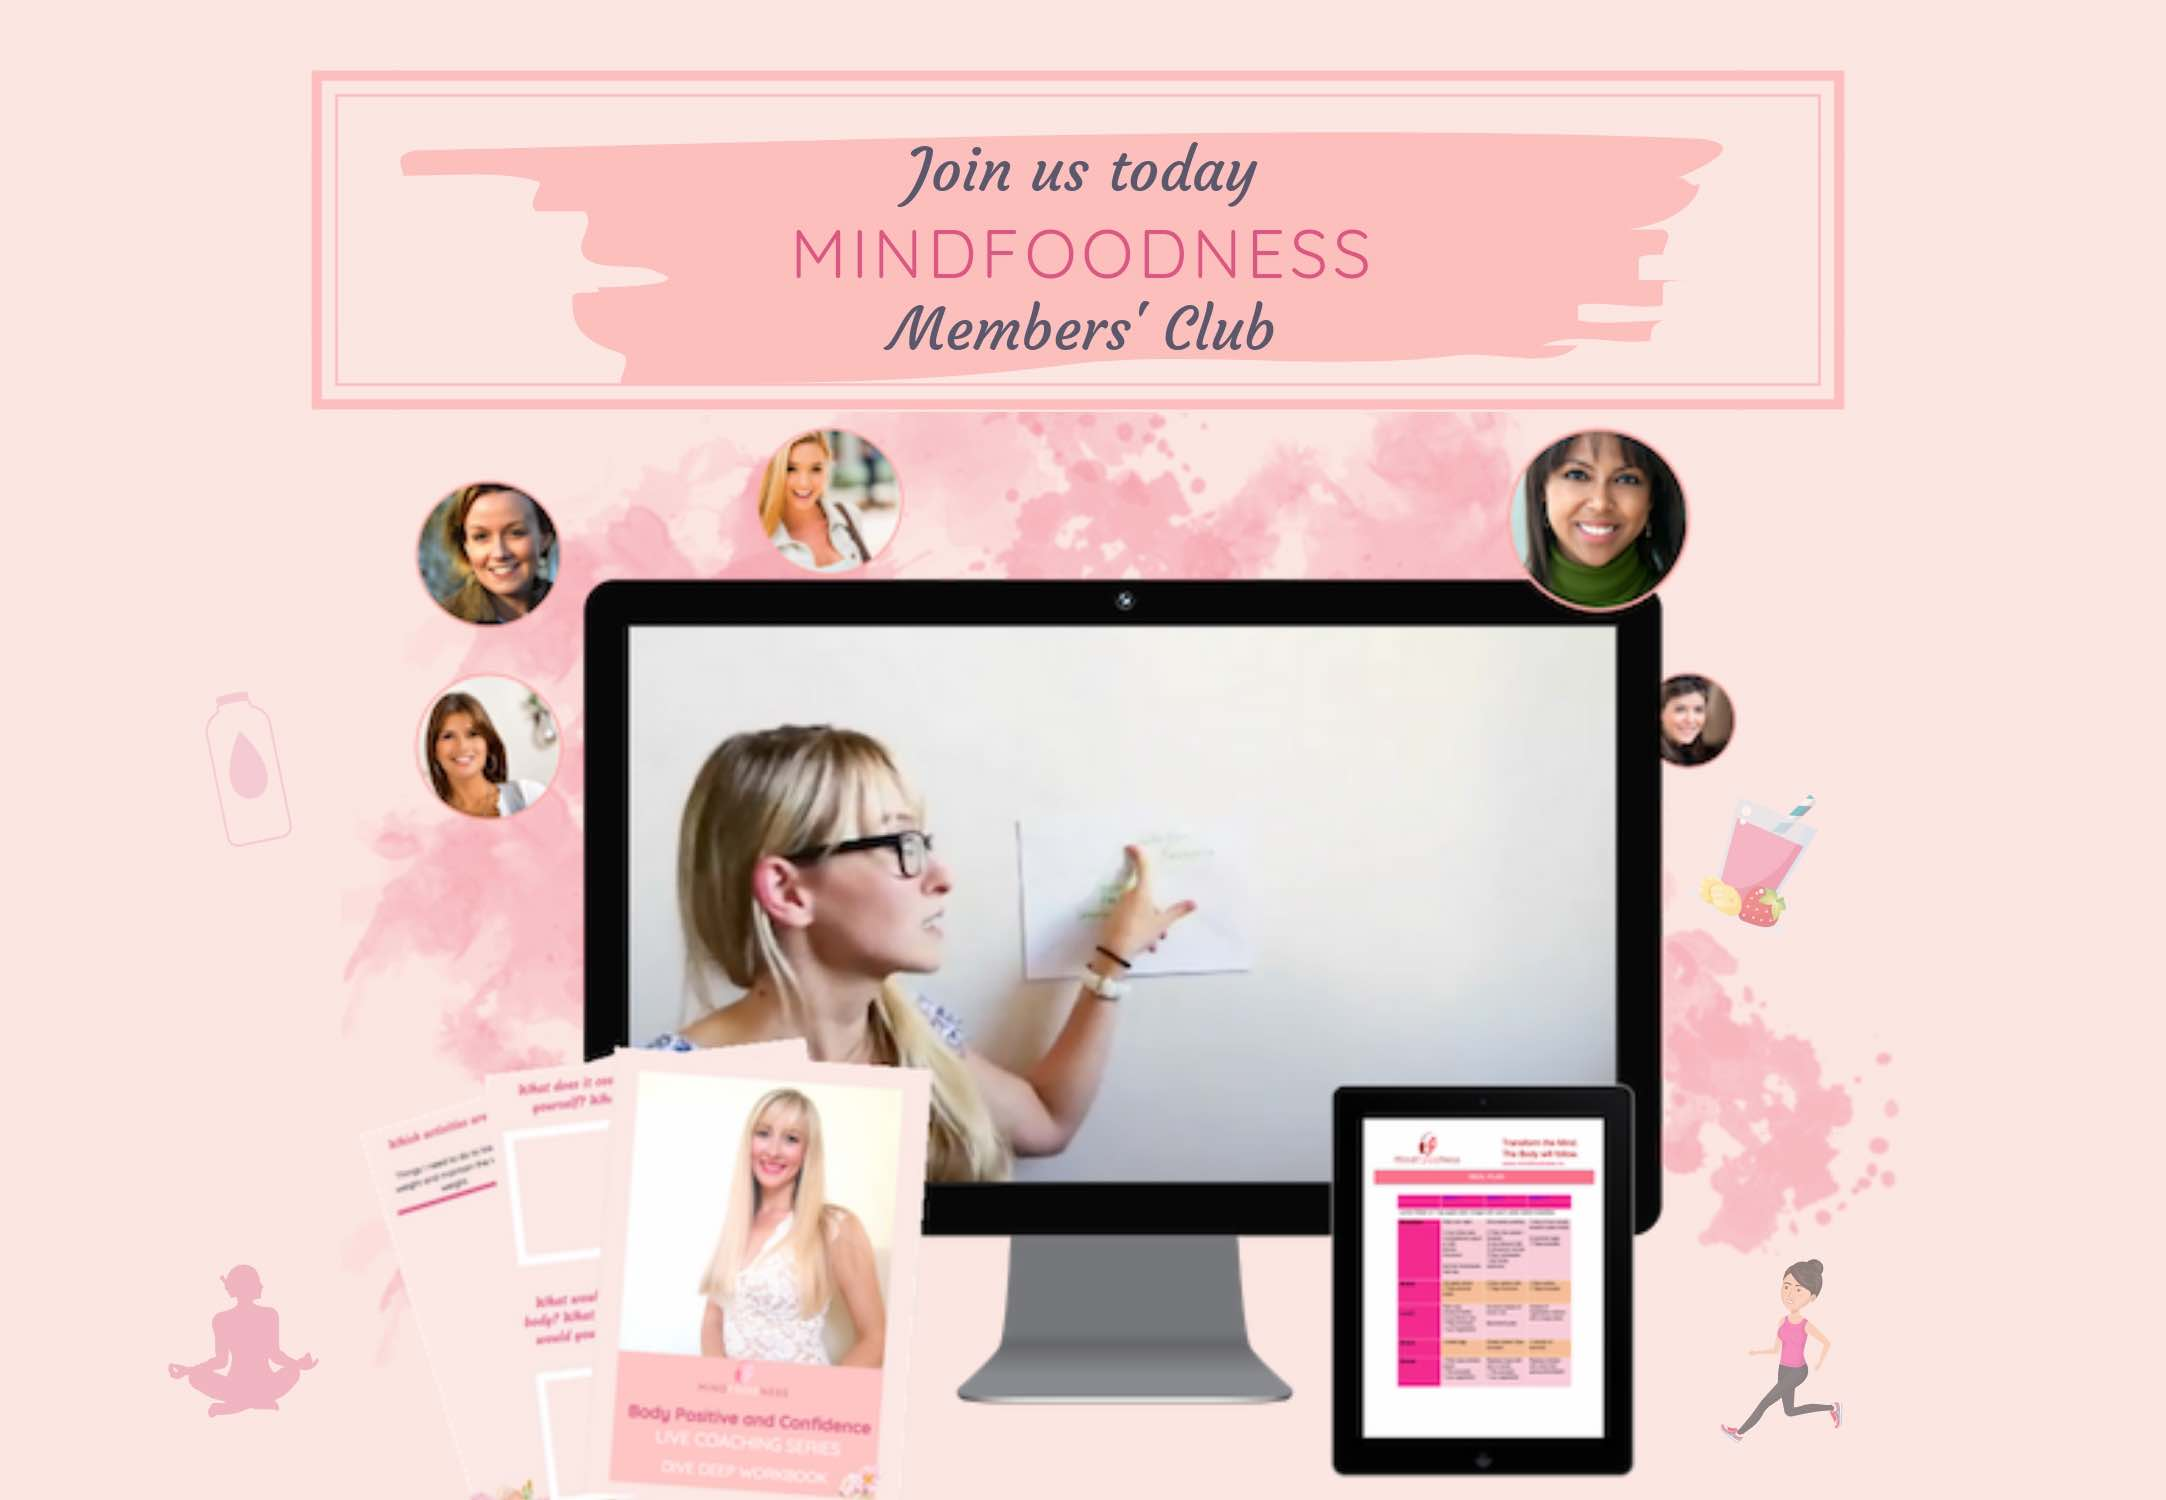 Nutrition|Weight Loss|Eating Psychology mindfoodness-members-clib Healthy Eating mindful eating Weight Loss